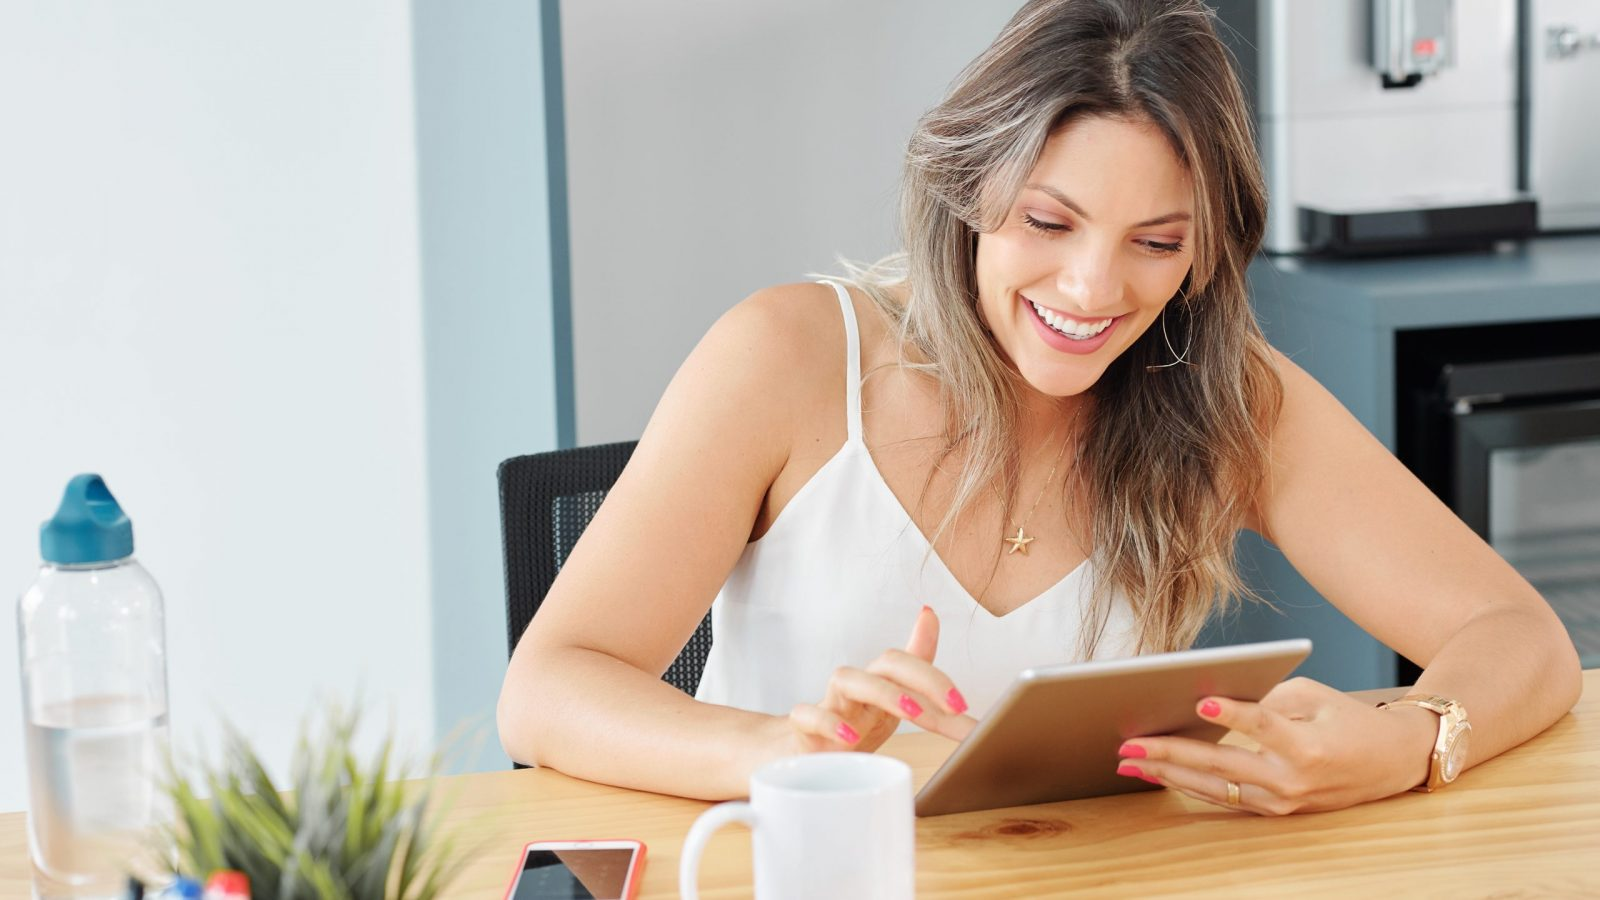 Beautiful smiling young business lady answering e-mails on tablet computer